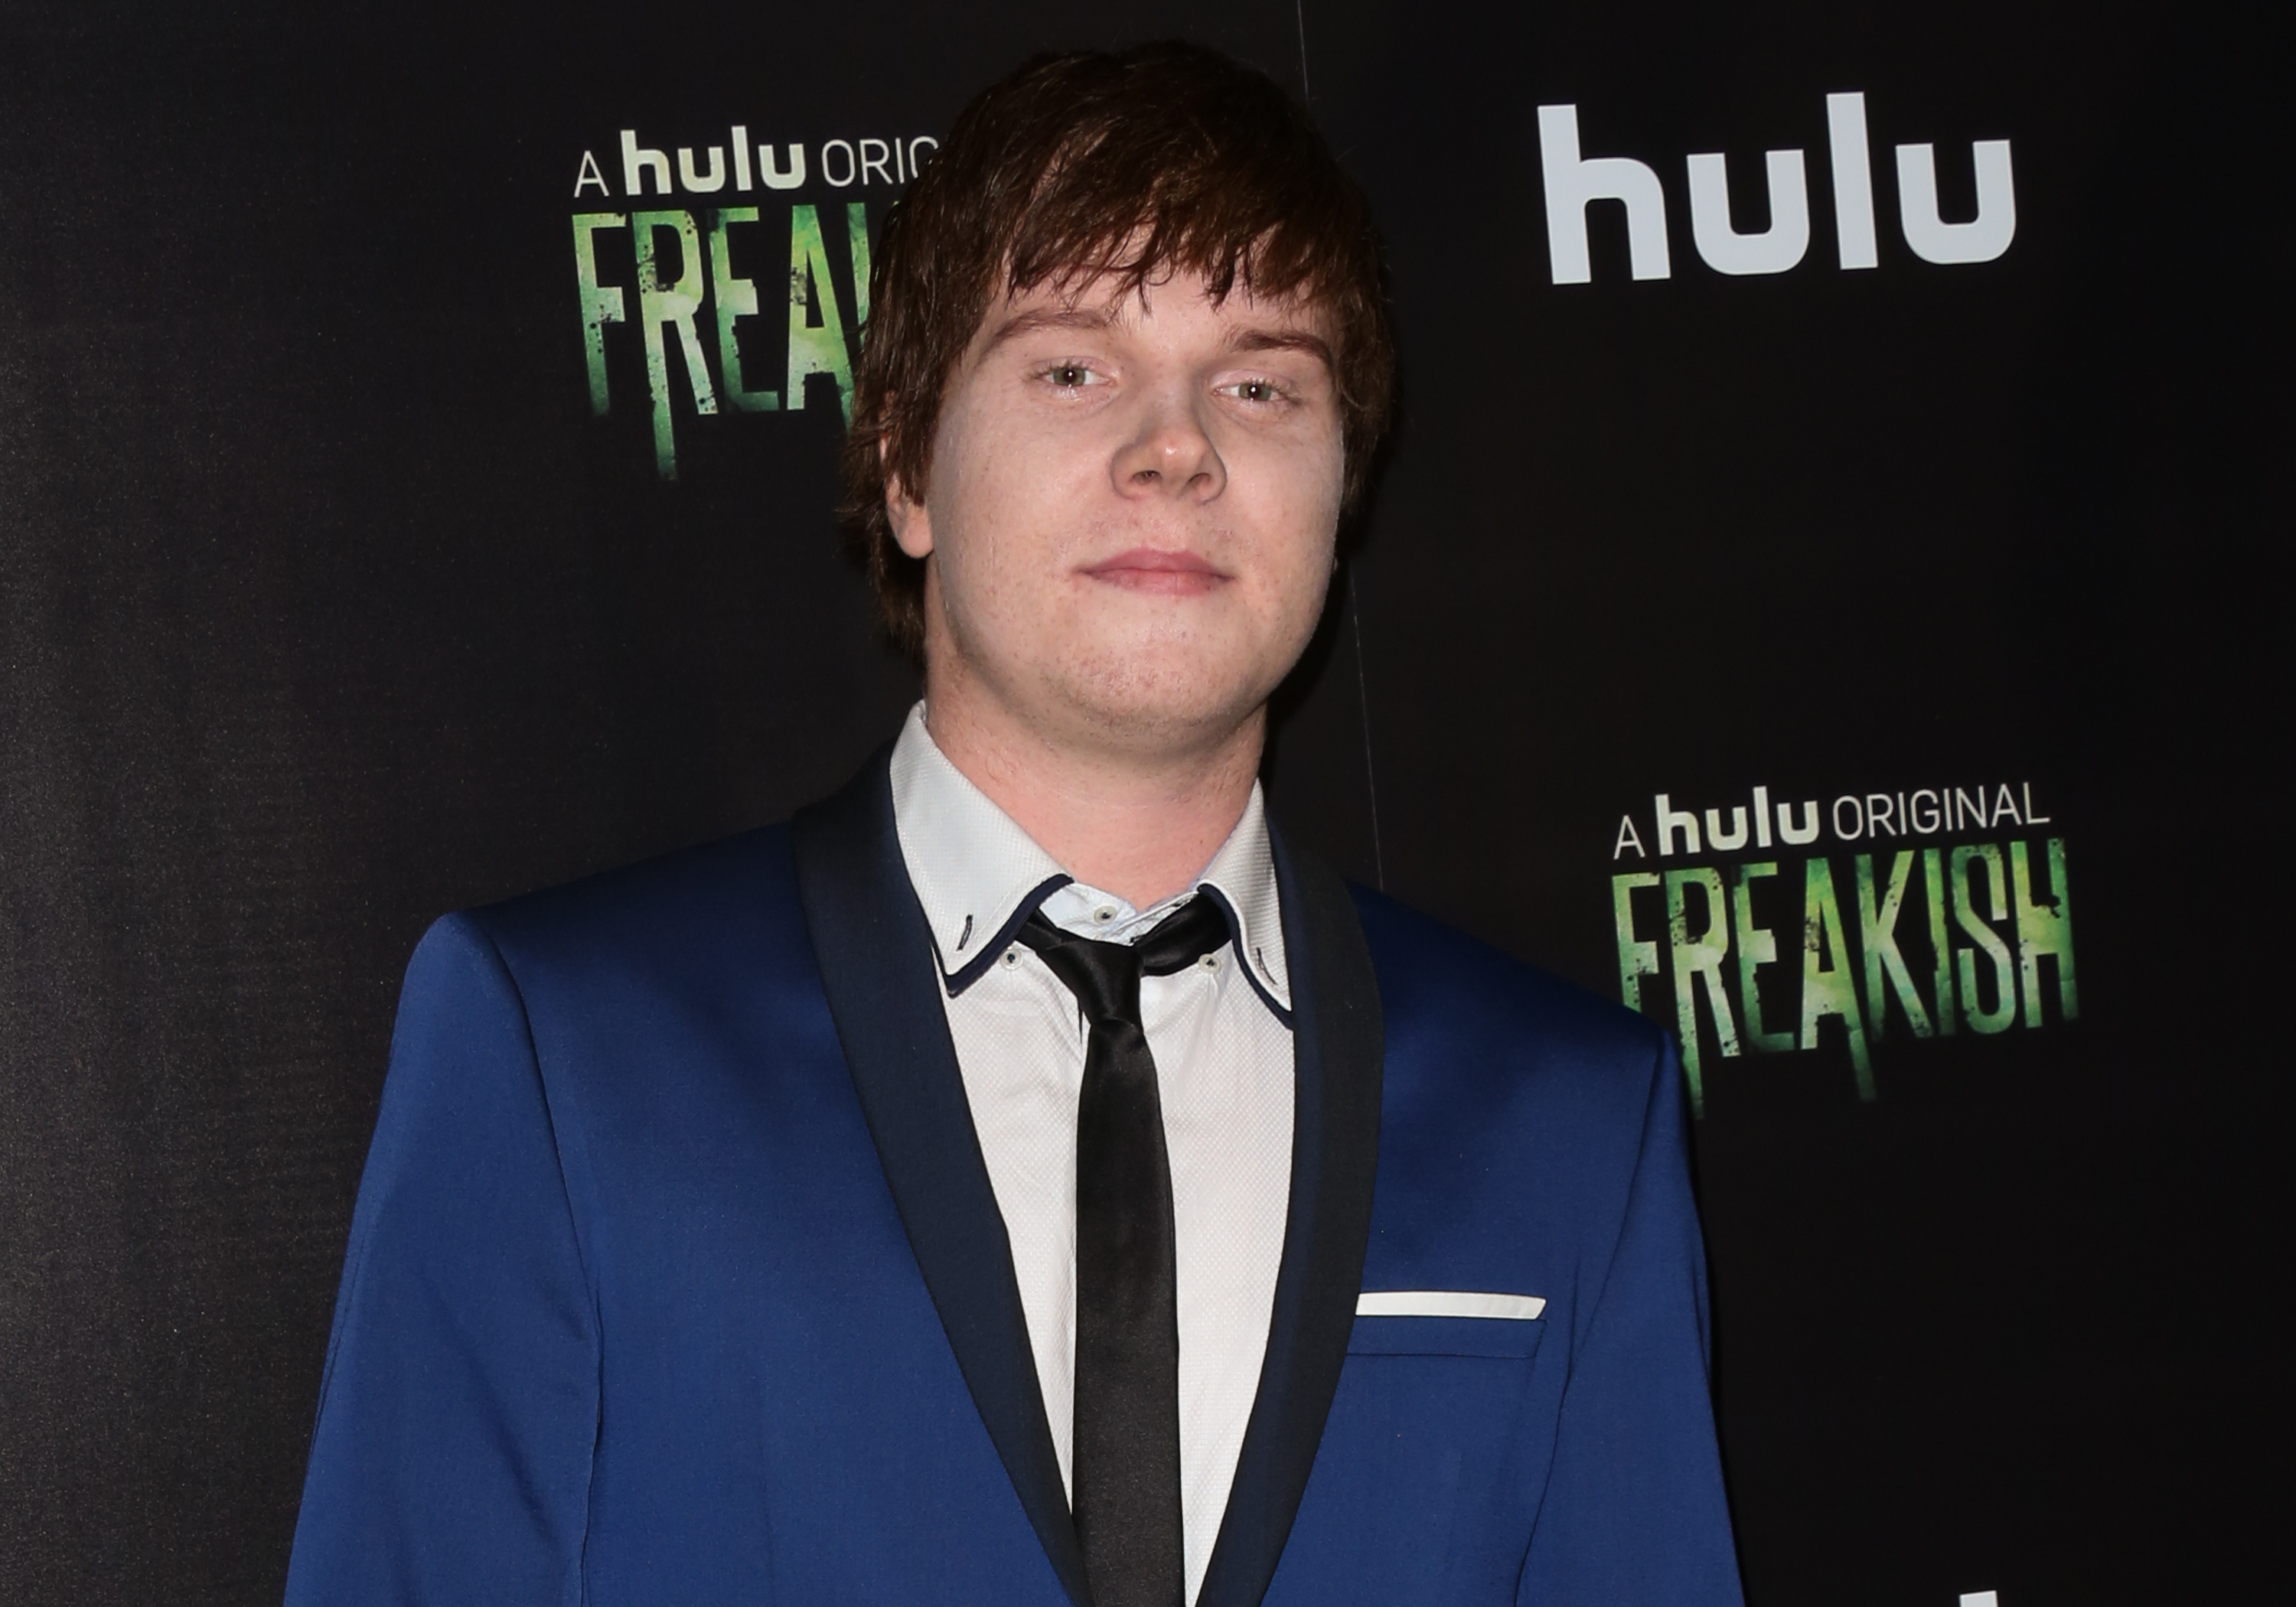 Actor Adam Hicks attends the premiere of Hulu's ''Freakish' at Smogshoppe on Oct. 5, 2016 in Los Angeles, California.